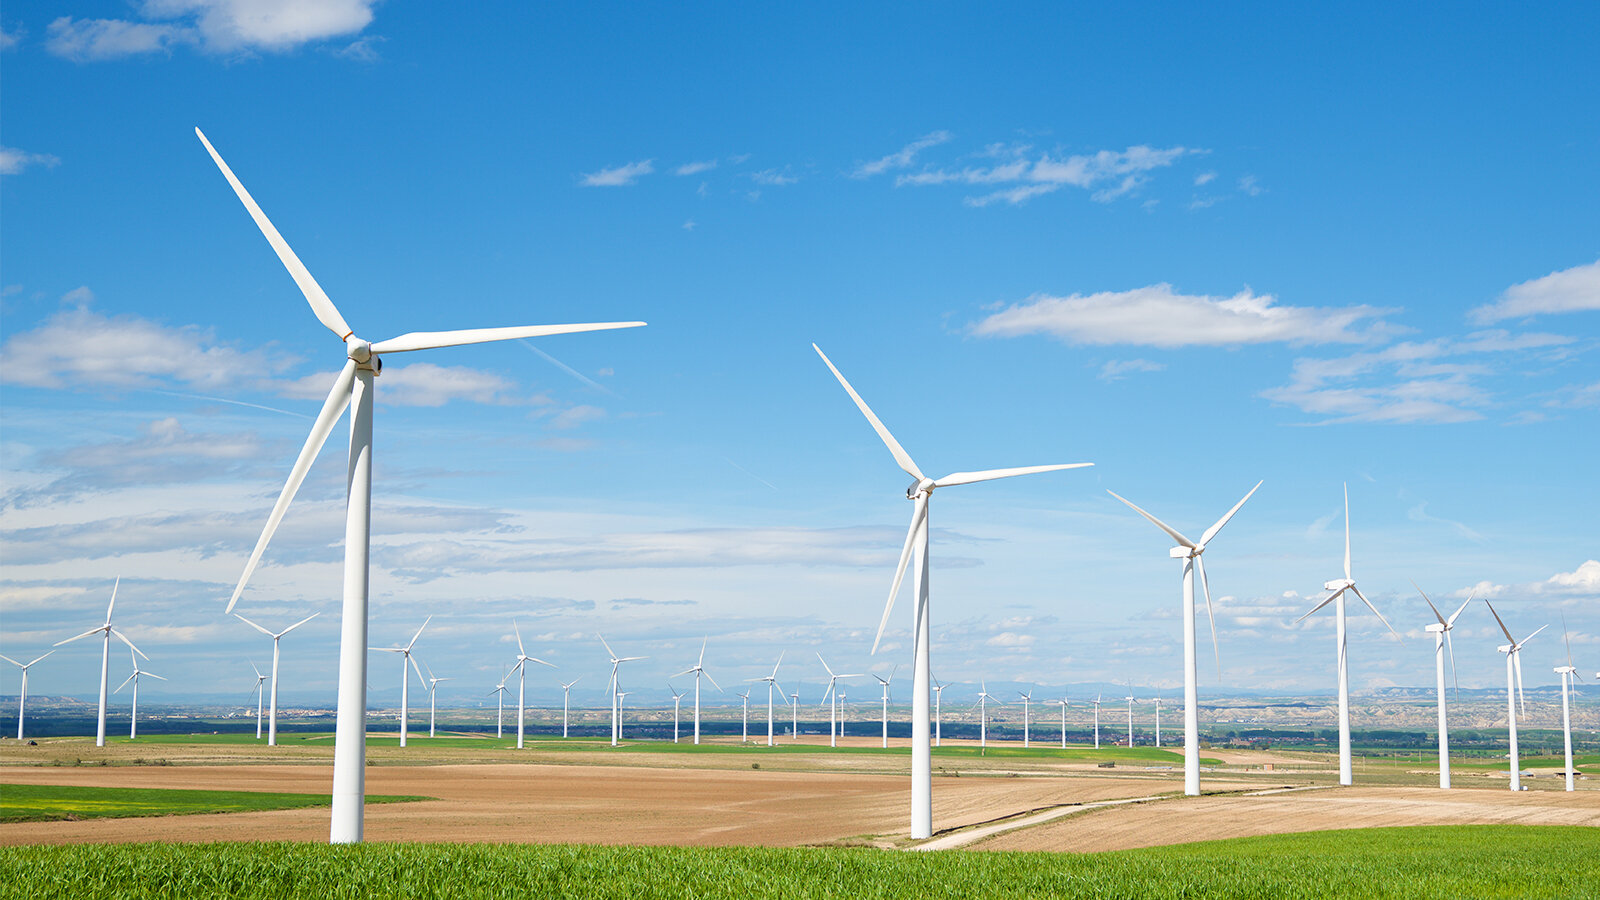 Wind farm with group of wind turbines